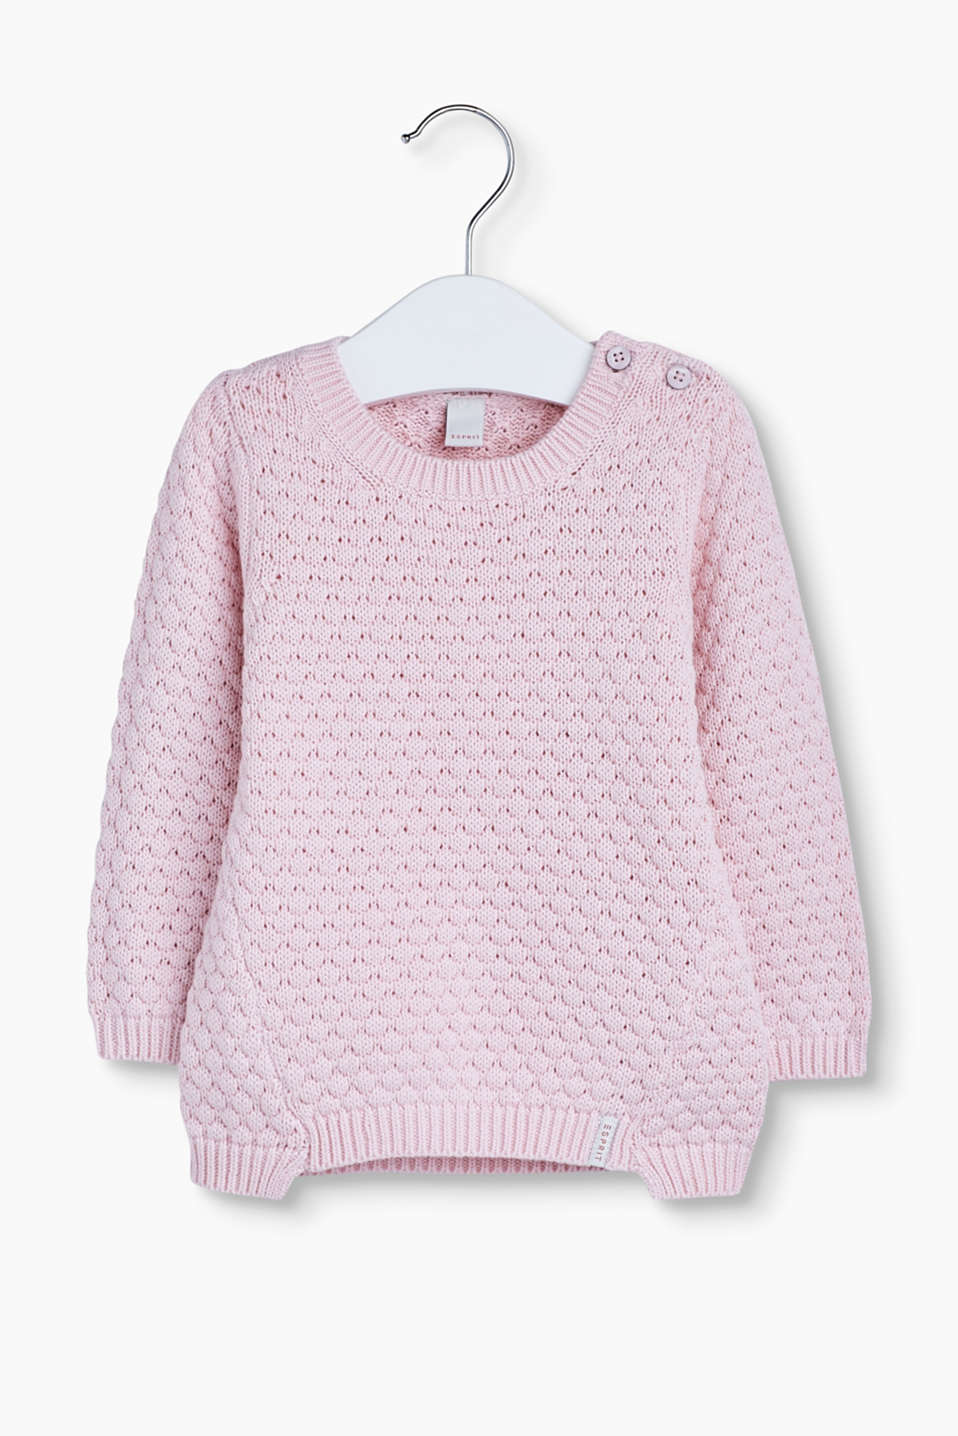 Soft basic jumper: Cute cotton jumper in a chunky knit pattern with ribbed cuffs.